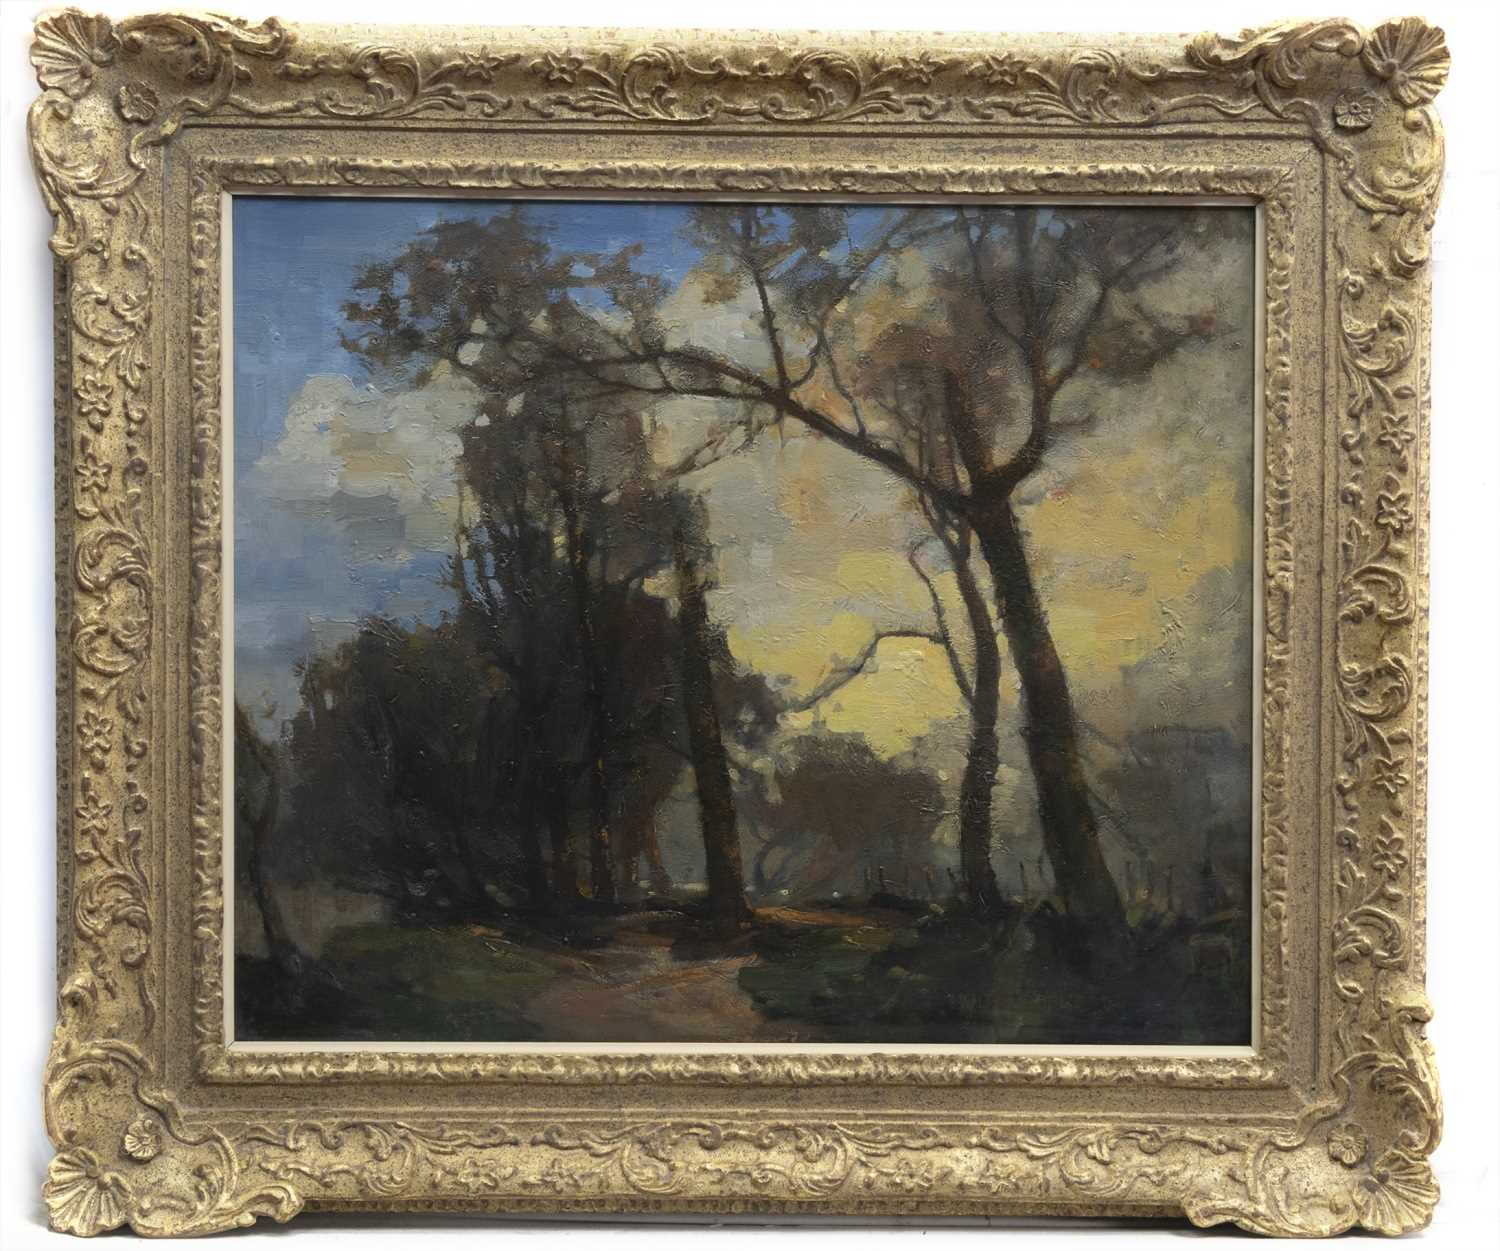 Lot 47 - AUTUMN SUNSET, COLINTON DELL 1910, AN OIL BY WALTER BALMER HISLOP